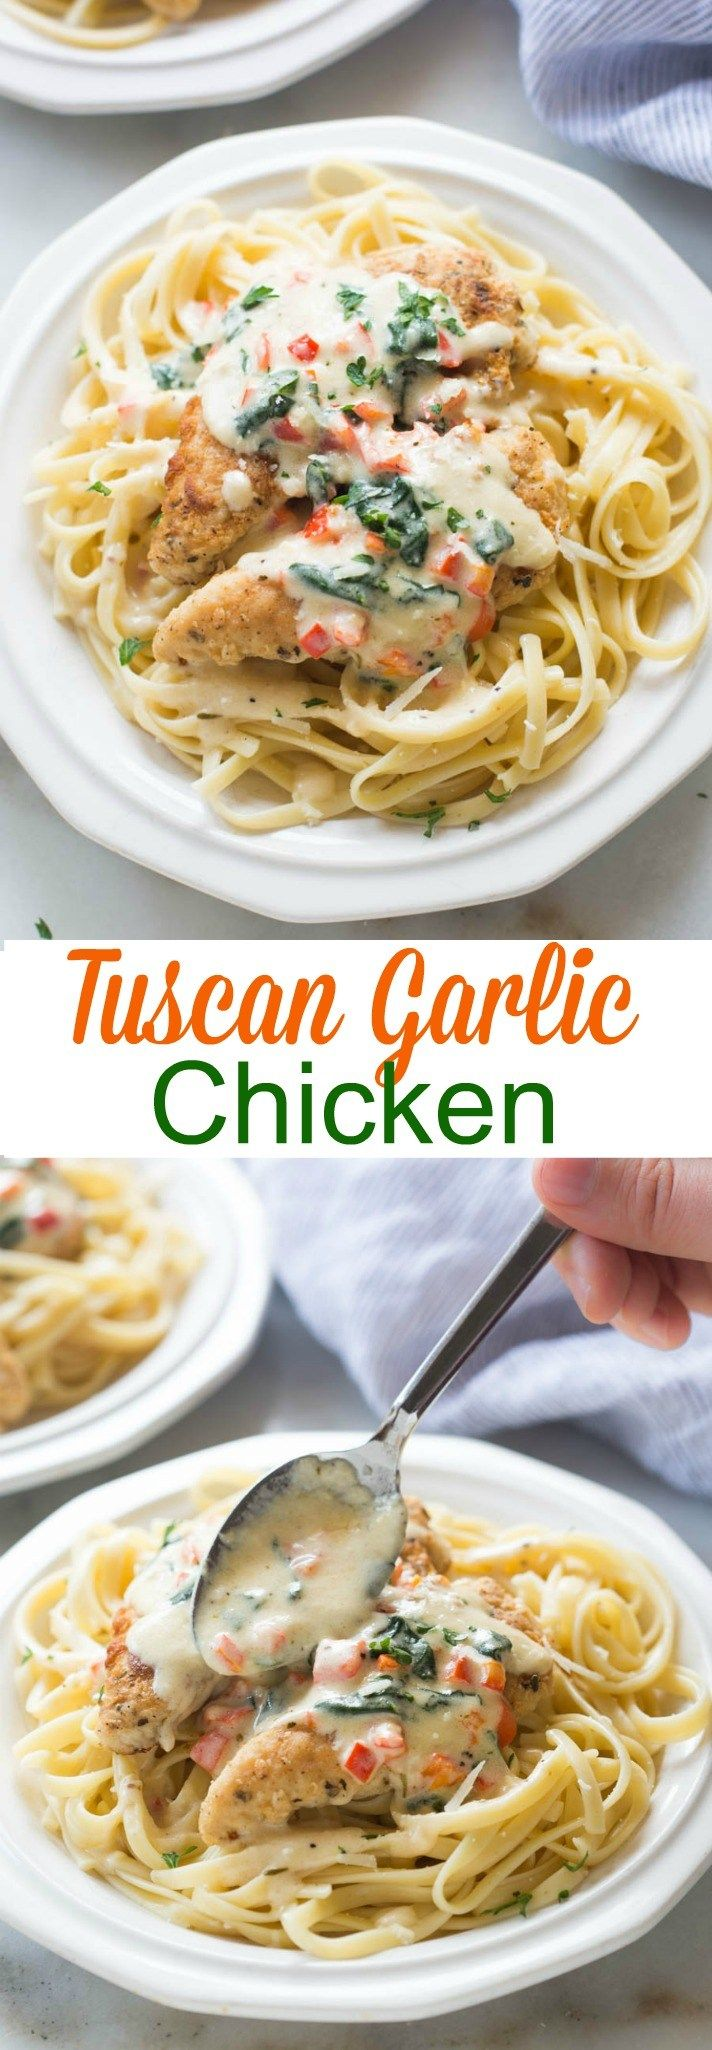 Tuscan Garlic Chicken is a family favorite! Tender and juicy crusted chicken served over noodles with a delicious creamy tuscan garlic sauce.  tastesbetterfromscratch.com